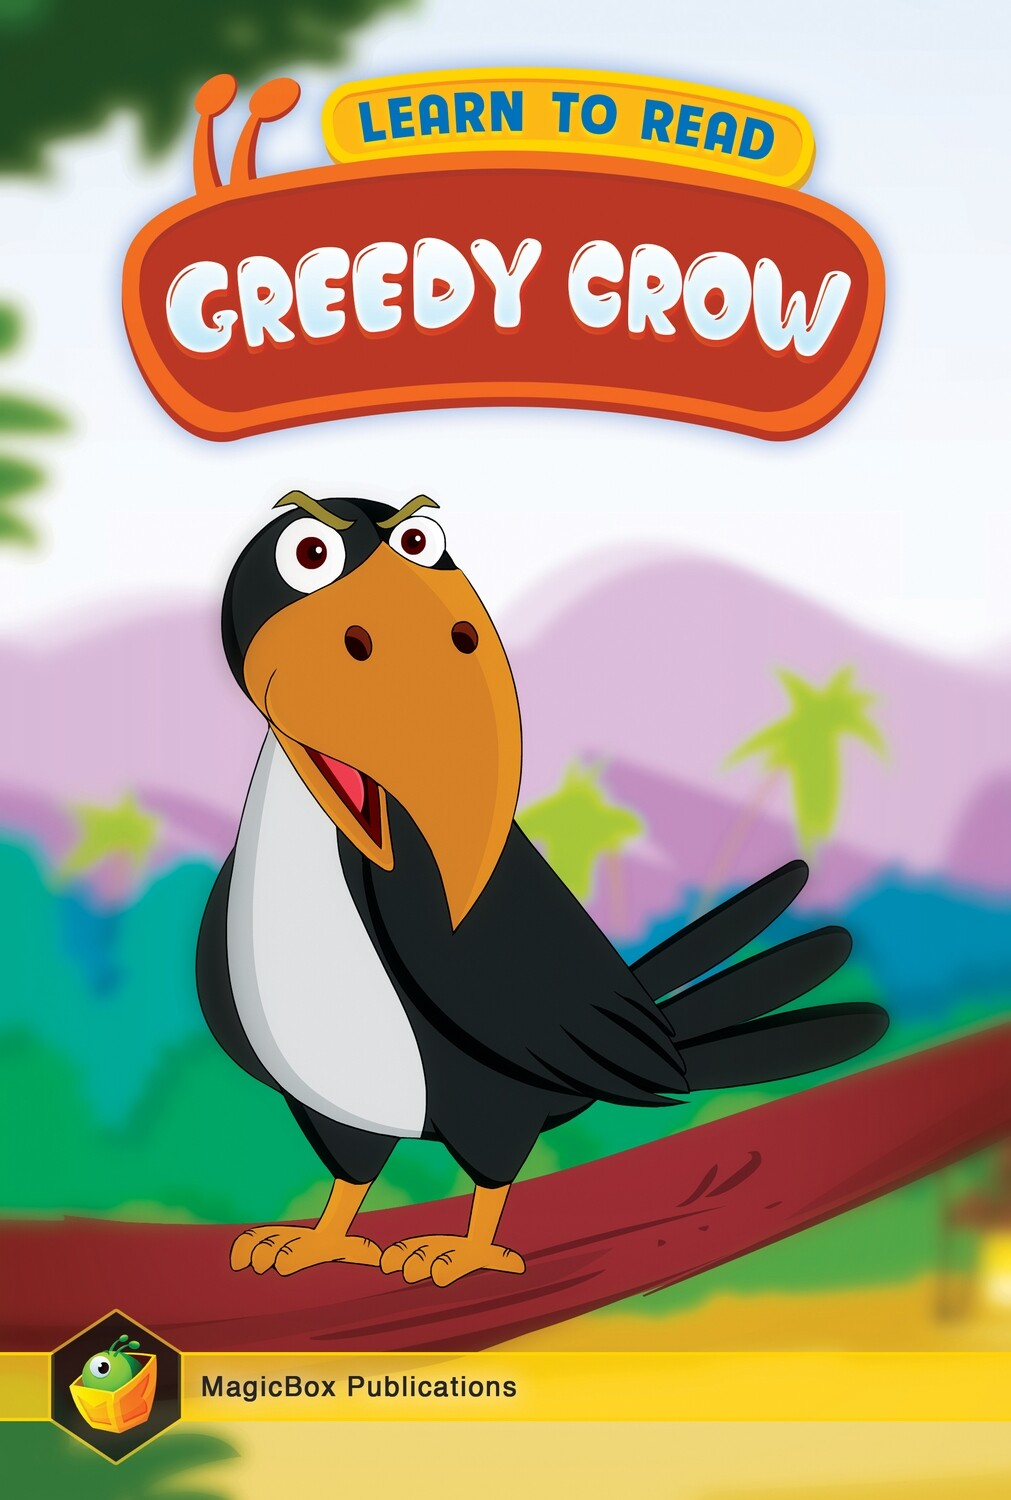 Greedy Crow